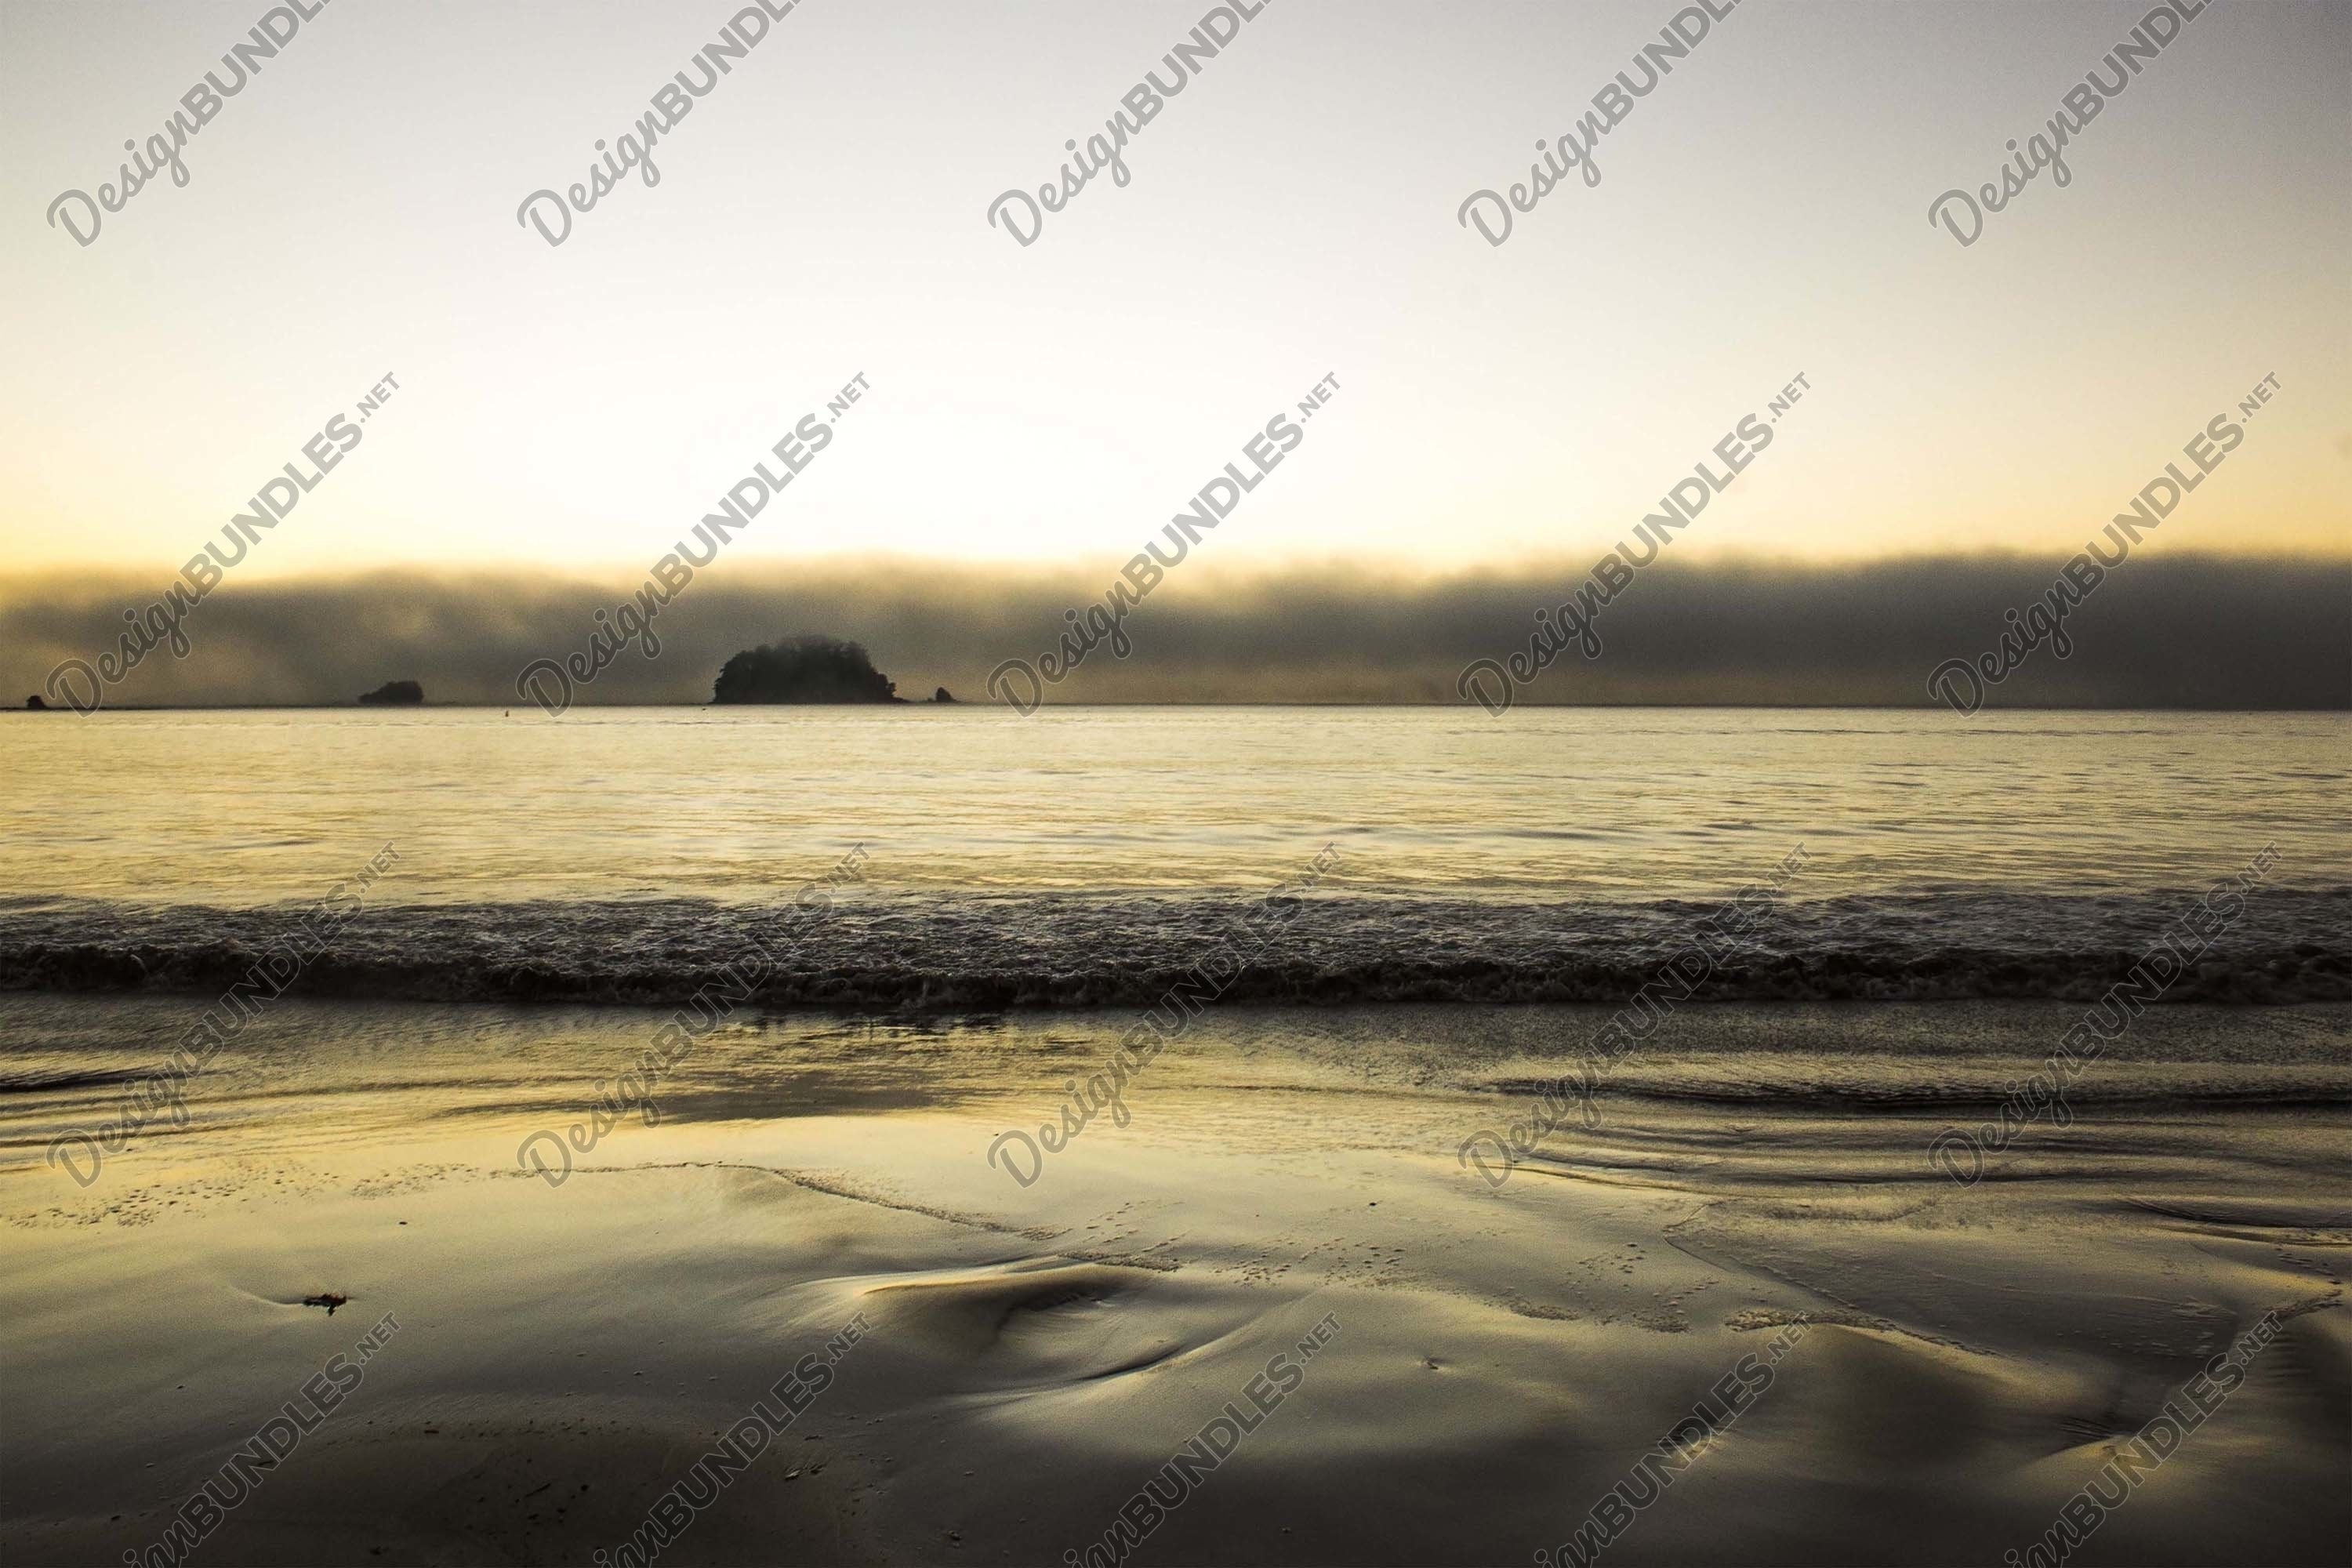 Stock Photo - Scenic View Of Sea Against Sky During Sunset example image 1